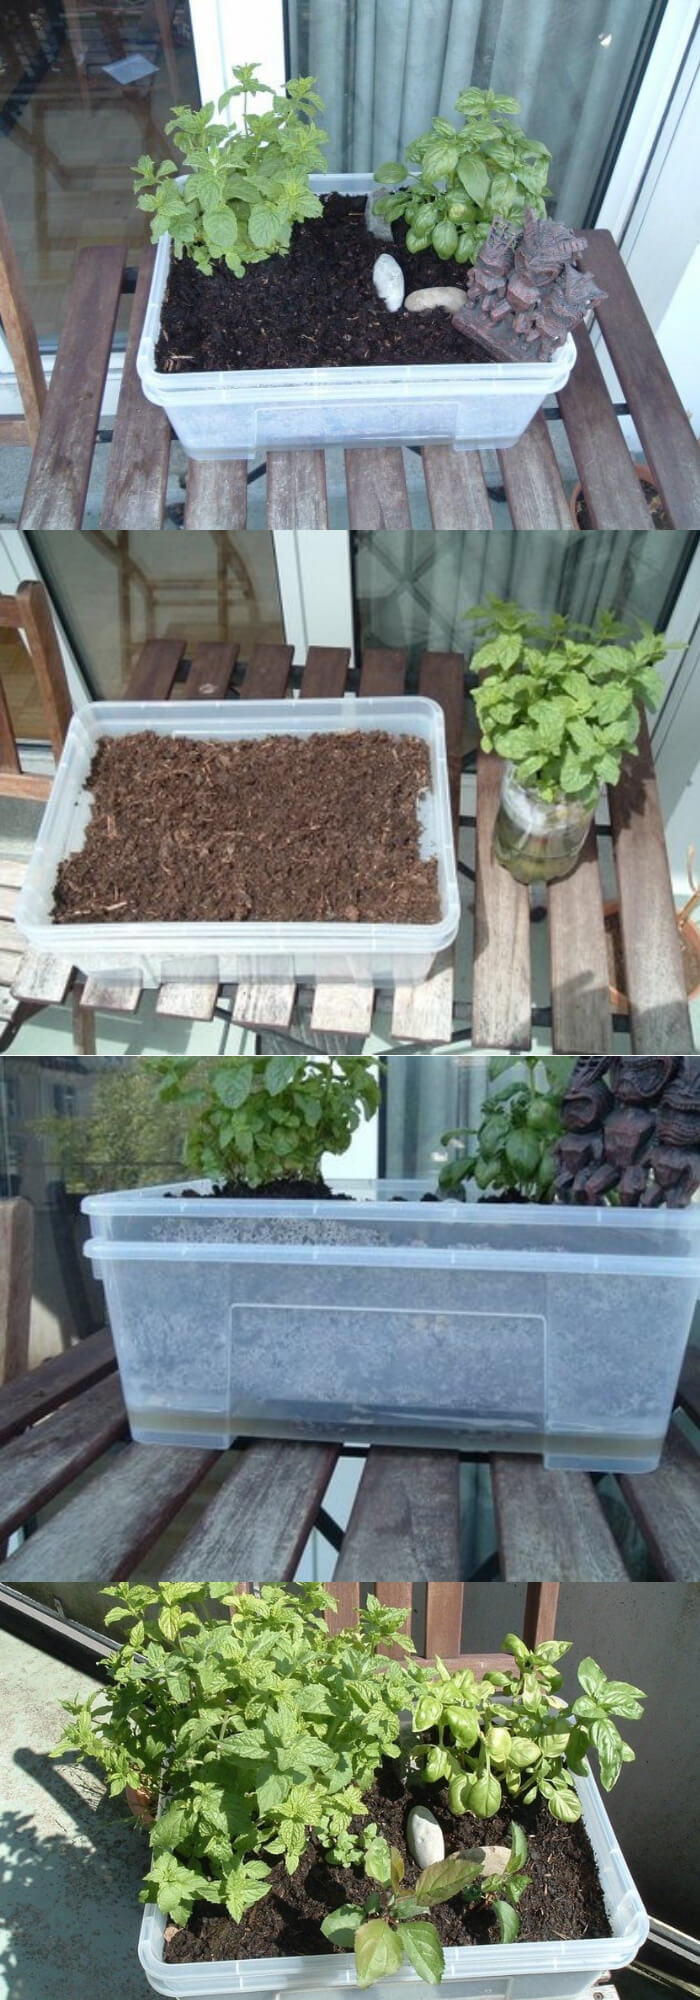 Self Watering Mini Garden | Best DIY Self-Watering System Ideas